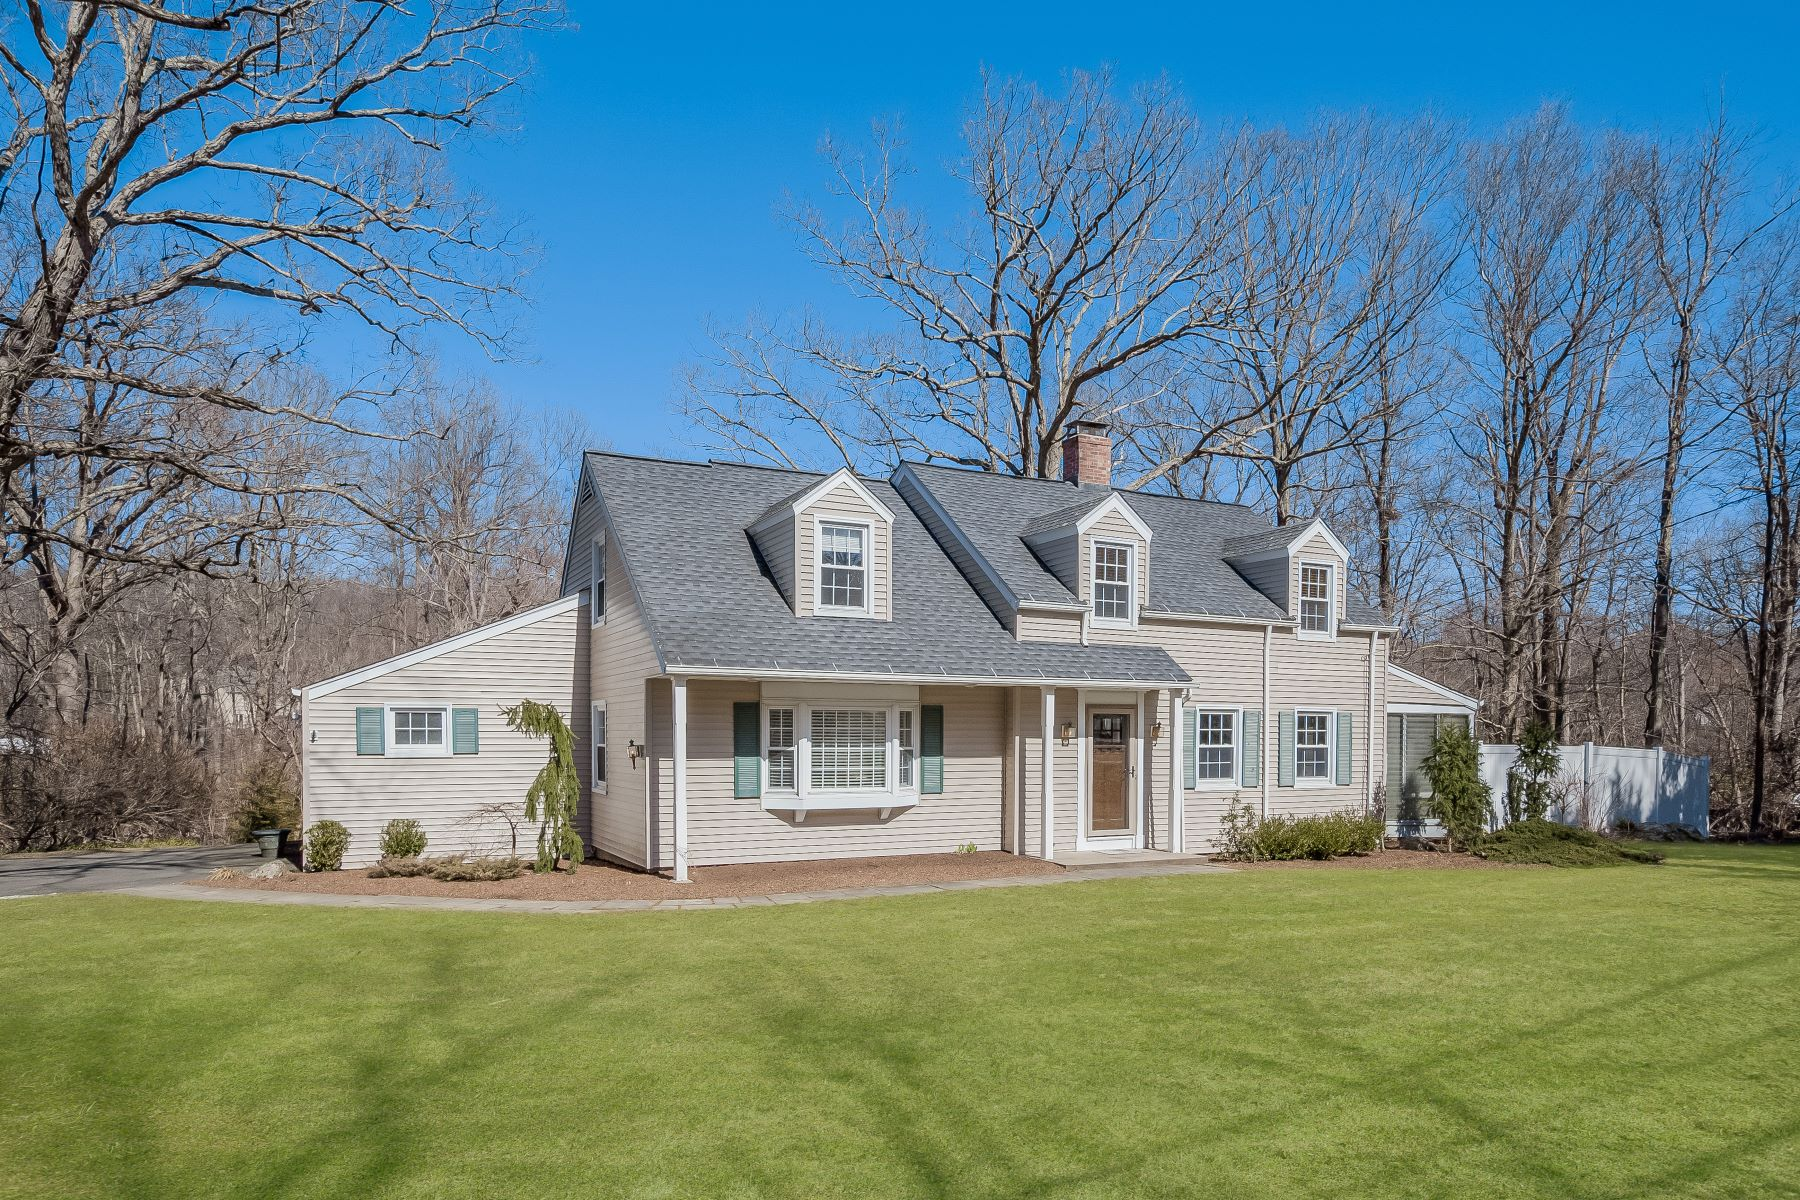 Eensgezinswoning voor Verkoop op Special Home With Character And Style 187-189 Middle River Road, Danbury, Connecticut 06811 Verenigde Staten